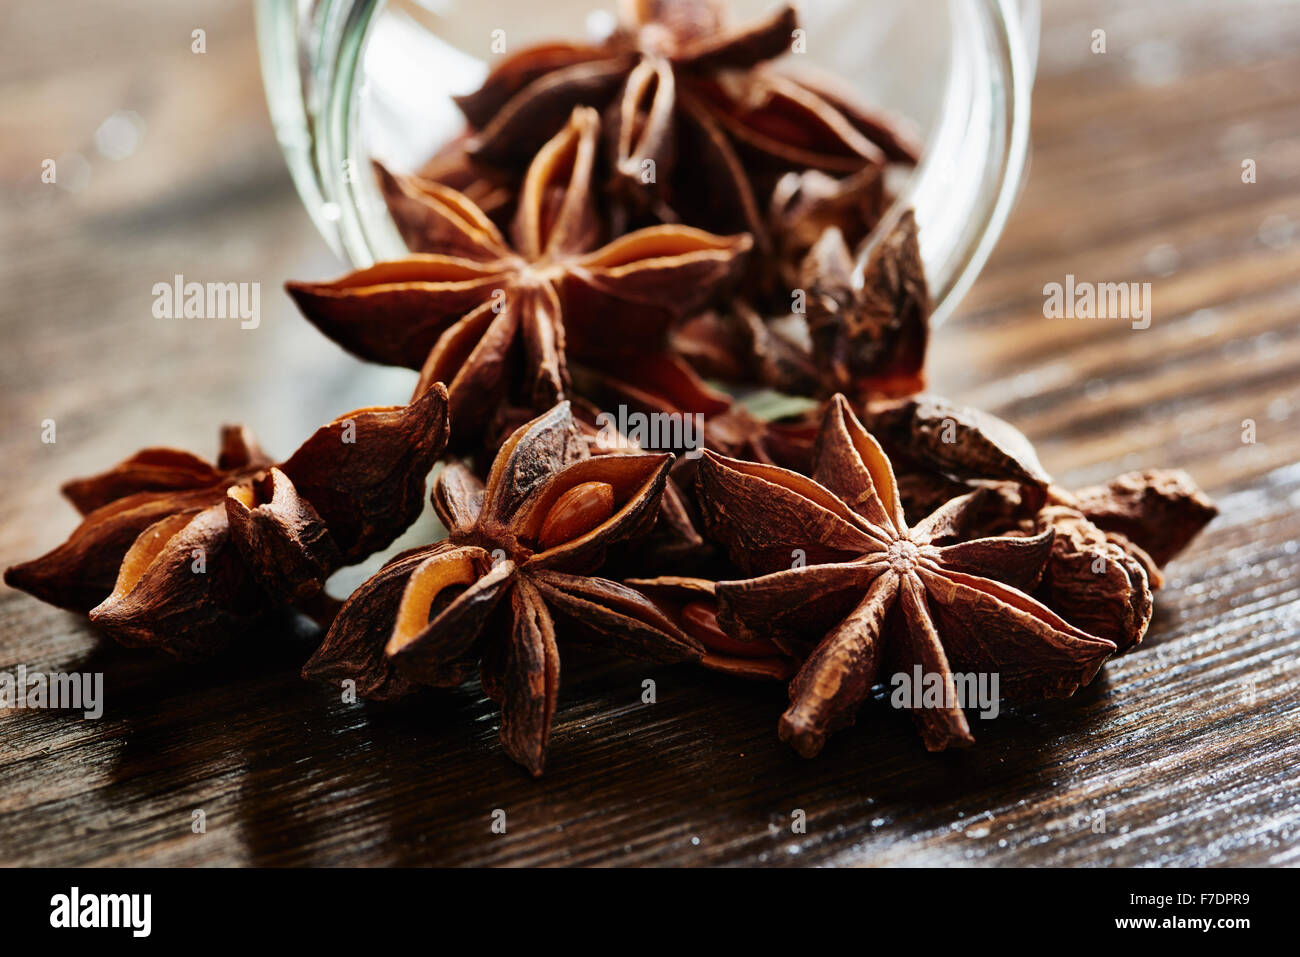 Star anise, glass jar of dark wood table - Stock Image